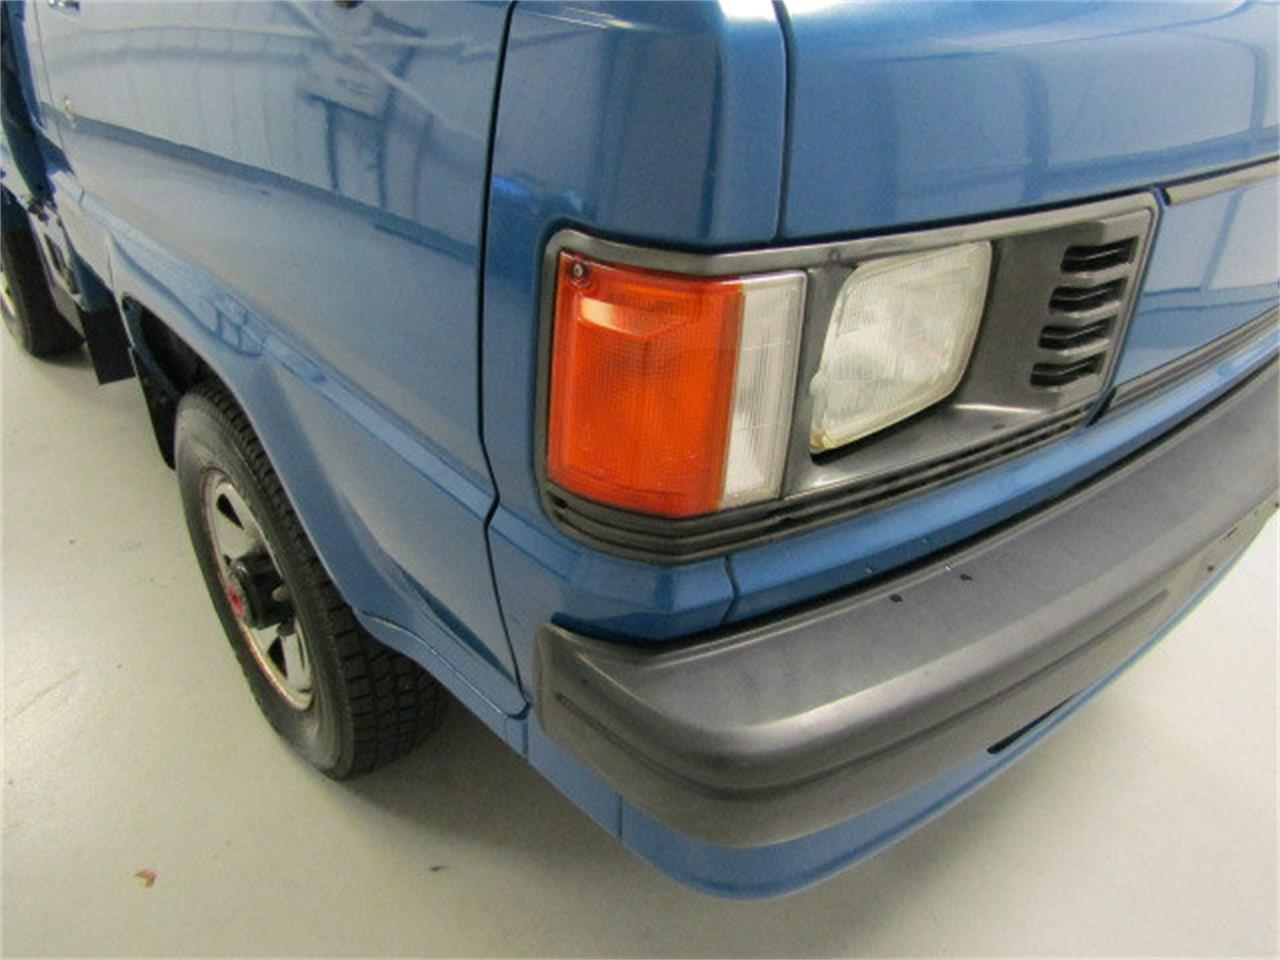 Large Picture of 1990 Toyota LiteAce - $7,979.00 Offered by Duncan Imports & Classic Cars - JM5H